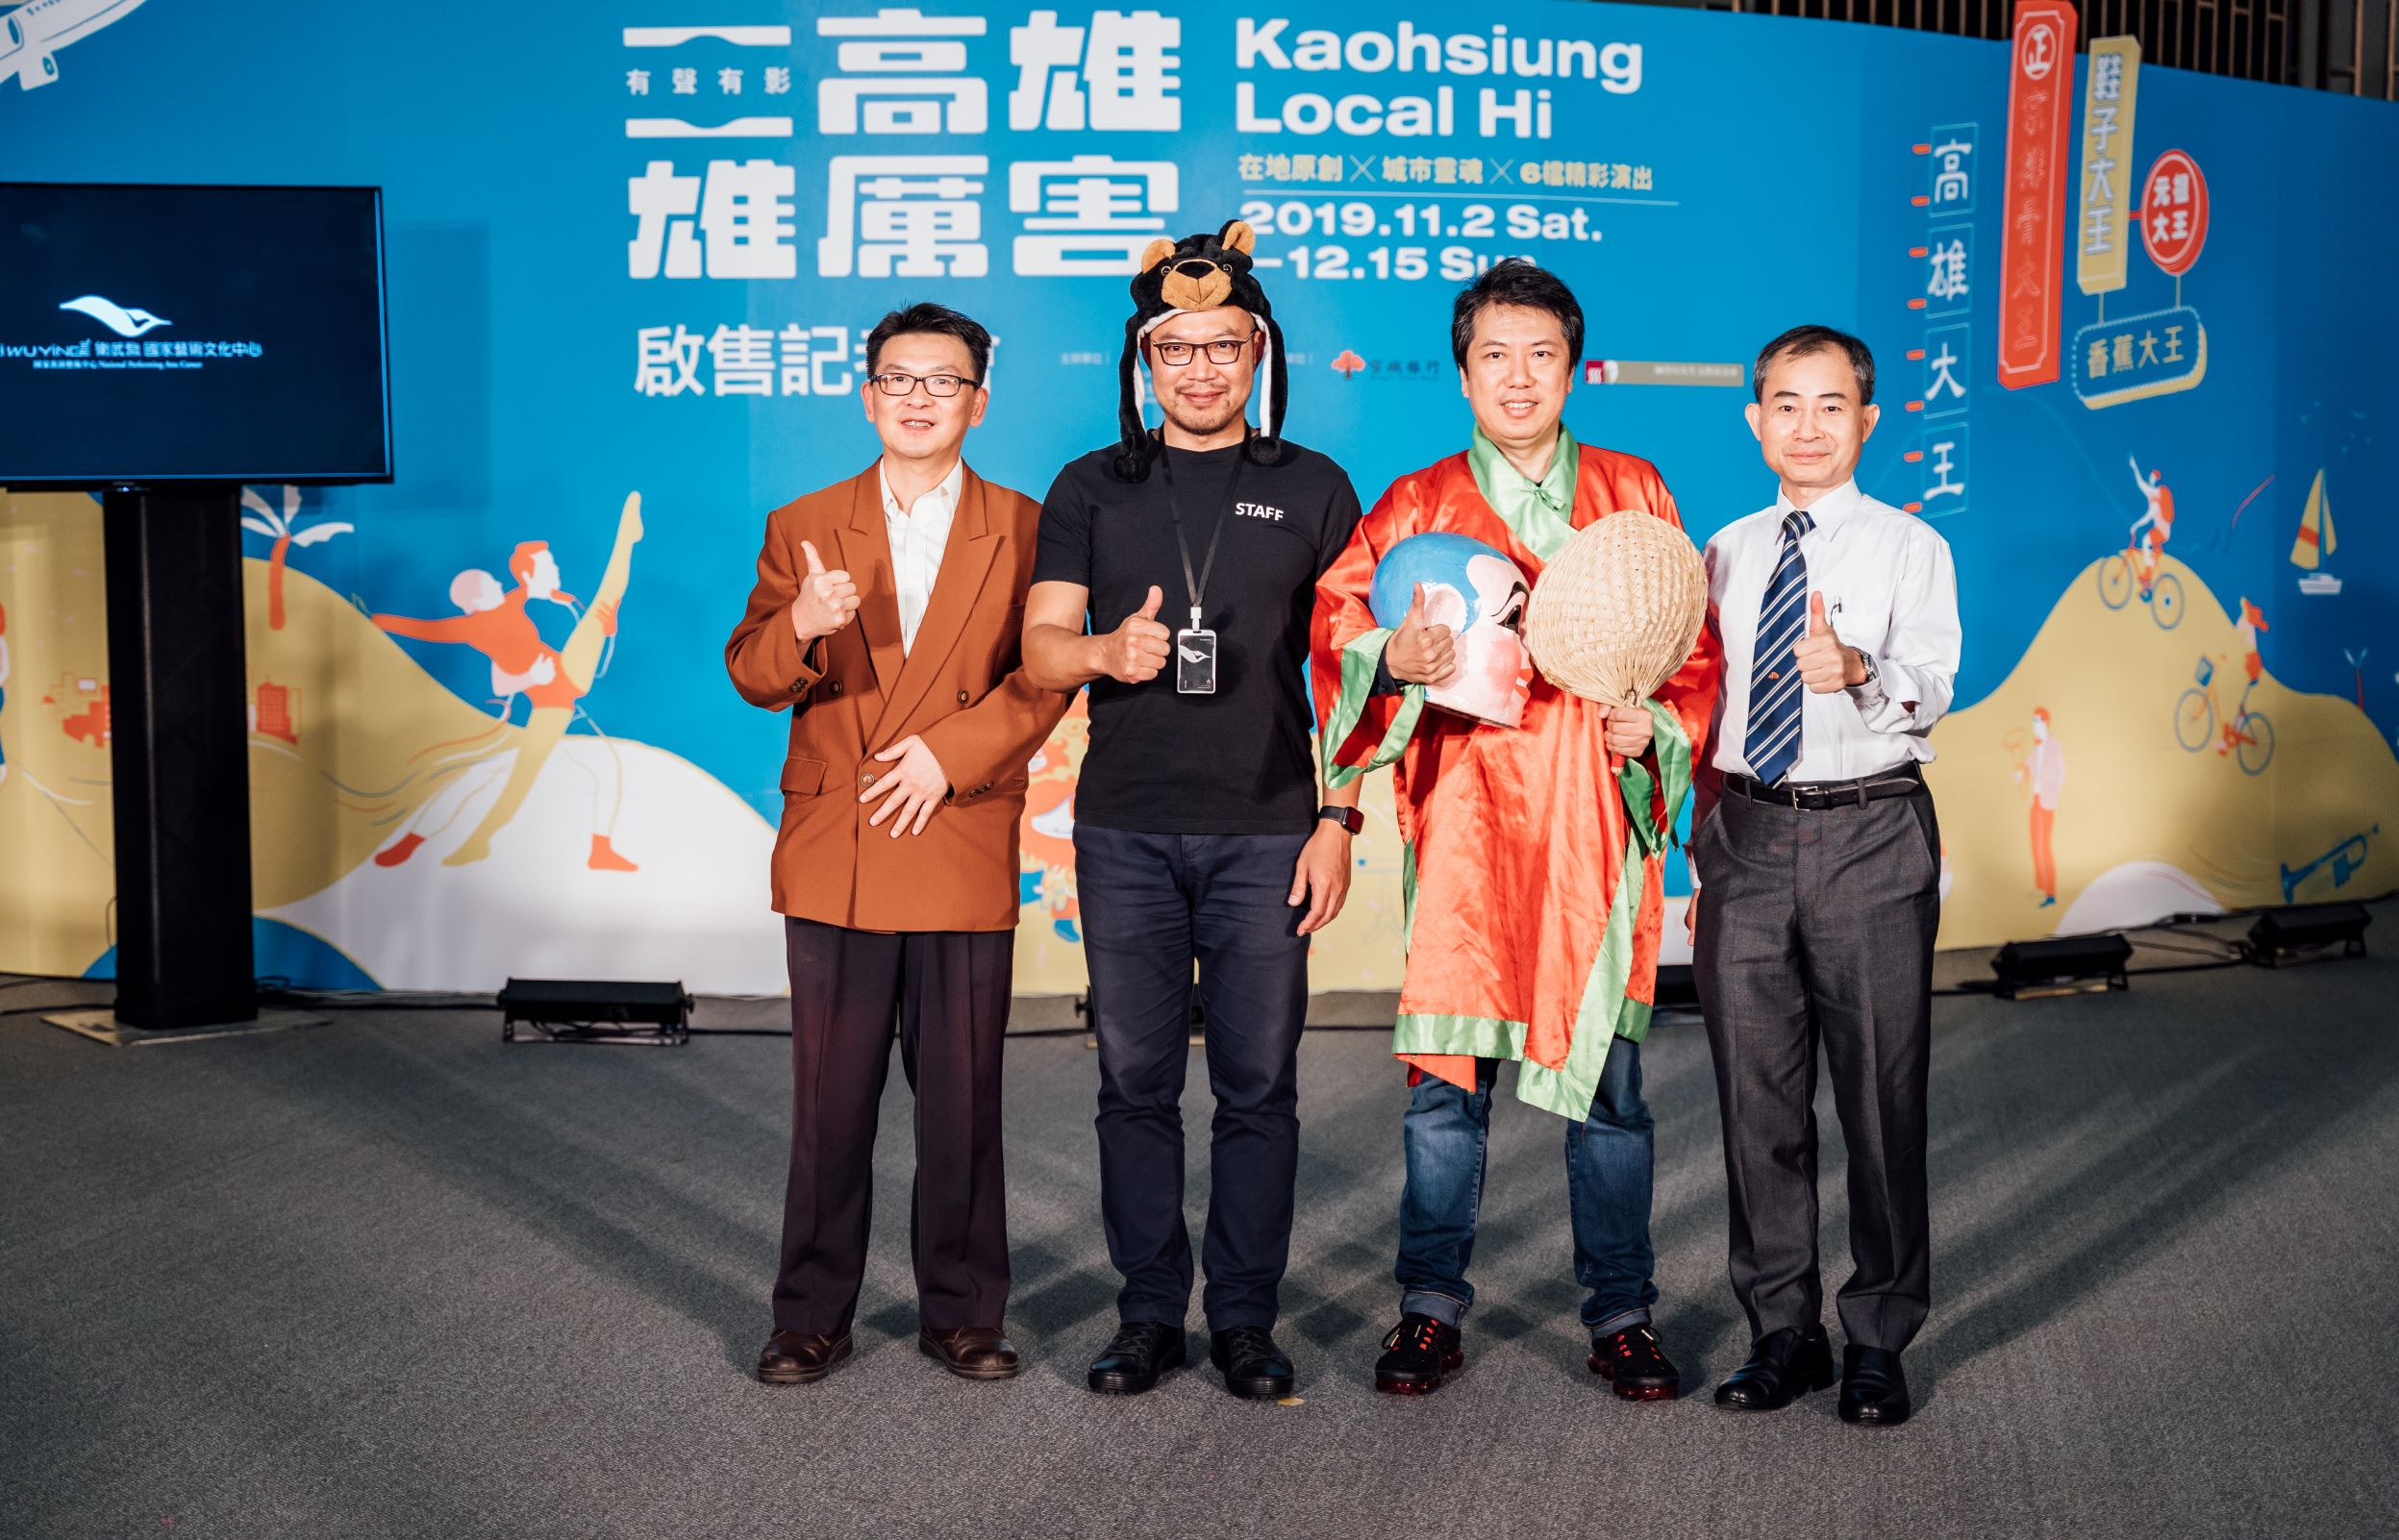 """Phoho:Chien-Ke YANG from King's Town Bank, the main supporter of Kaohsiung Local Hi added, """"Local Hi's need local support, and although King's Town Bank is not the largest in size, but certainly anticipate to be the strongest supporting role with Kaohsiung Local Hi and citizens of the city."""""""